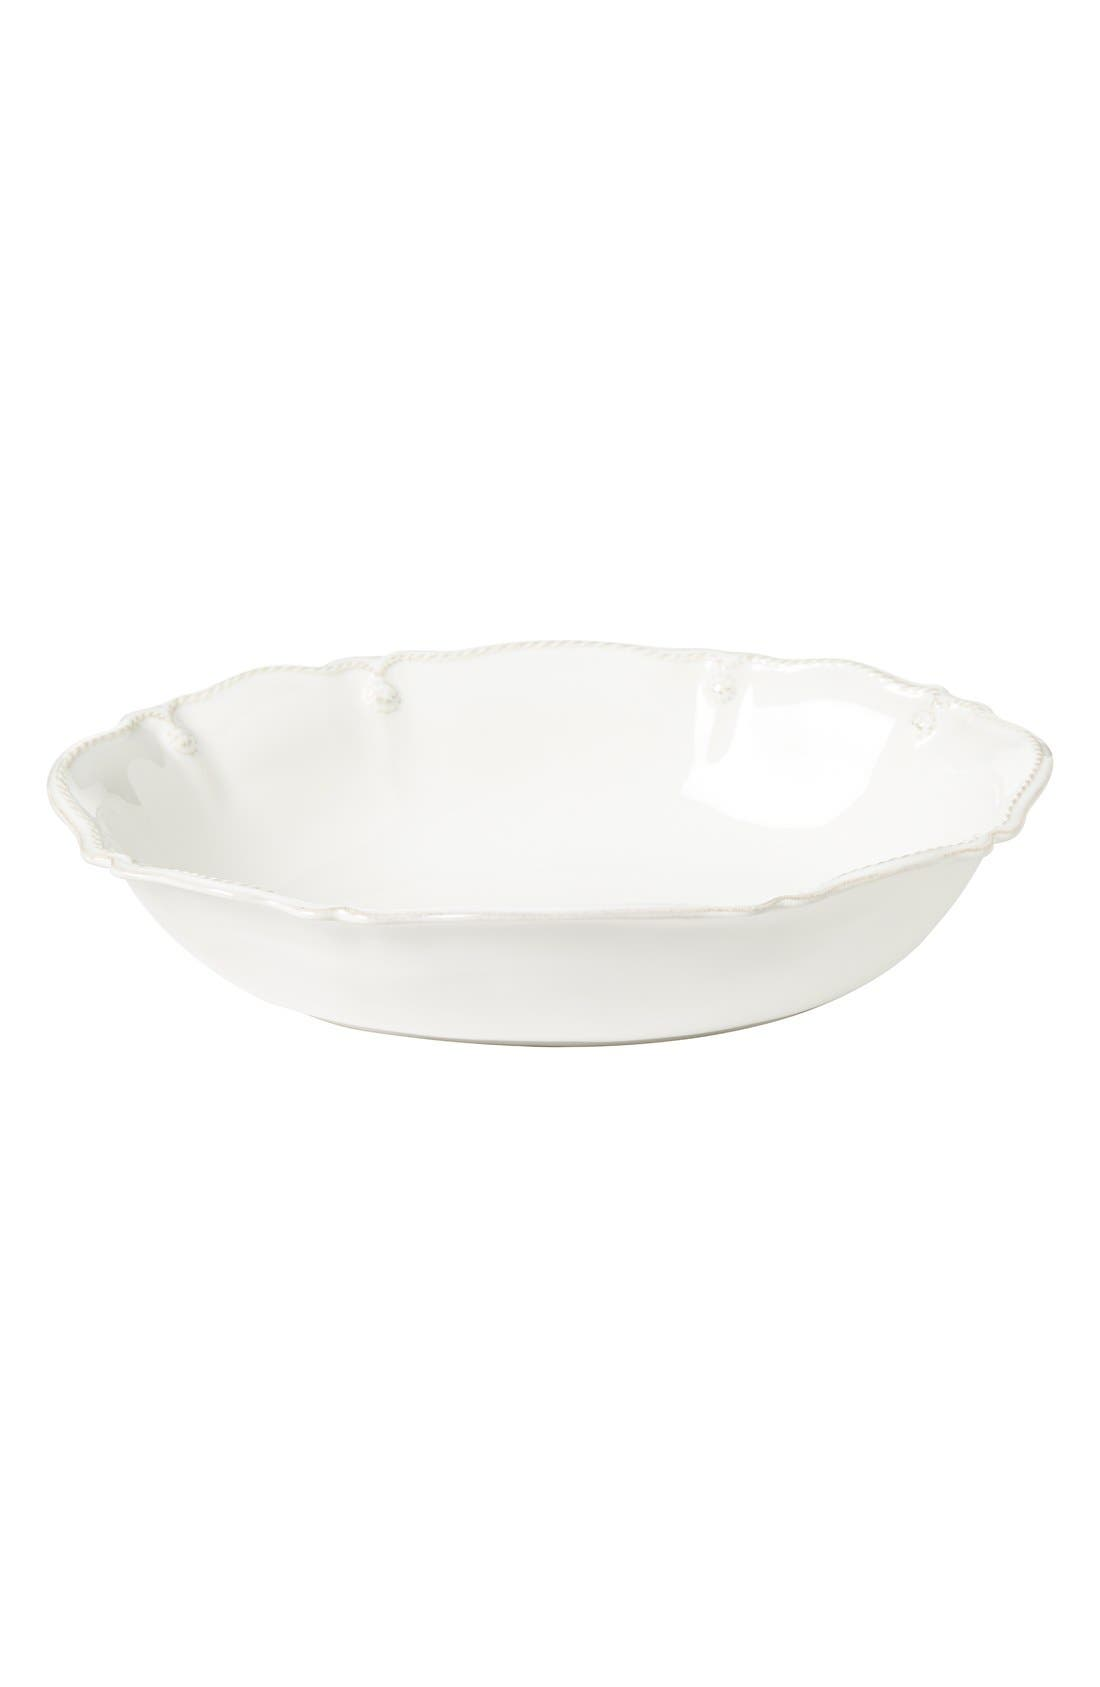 Juliska 'Berry and Thread' Oval Serving Bowl